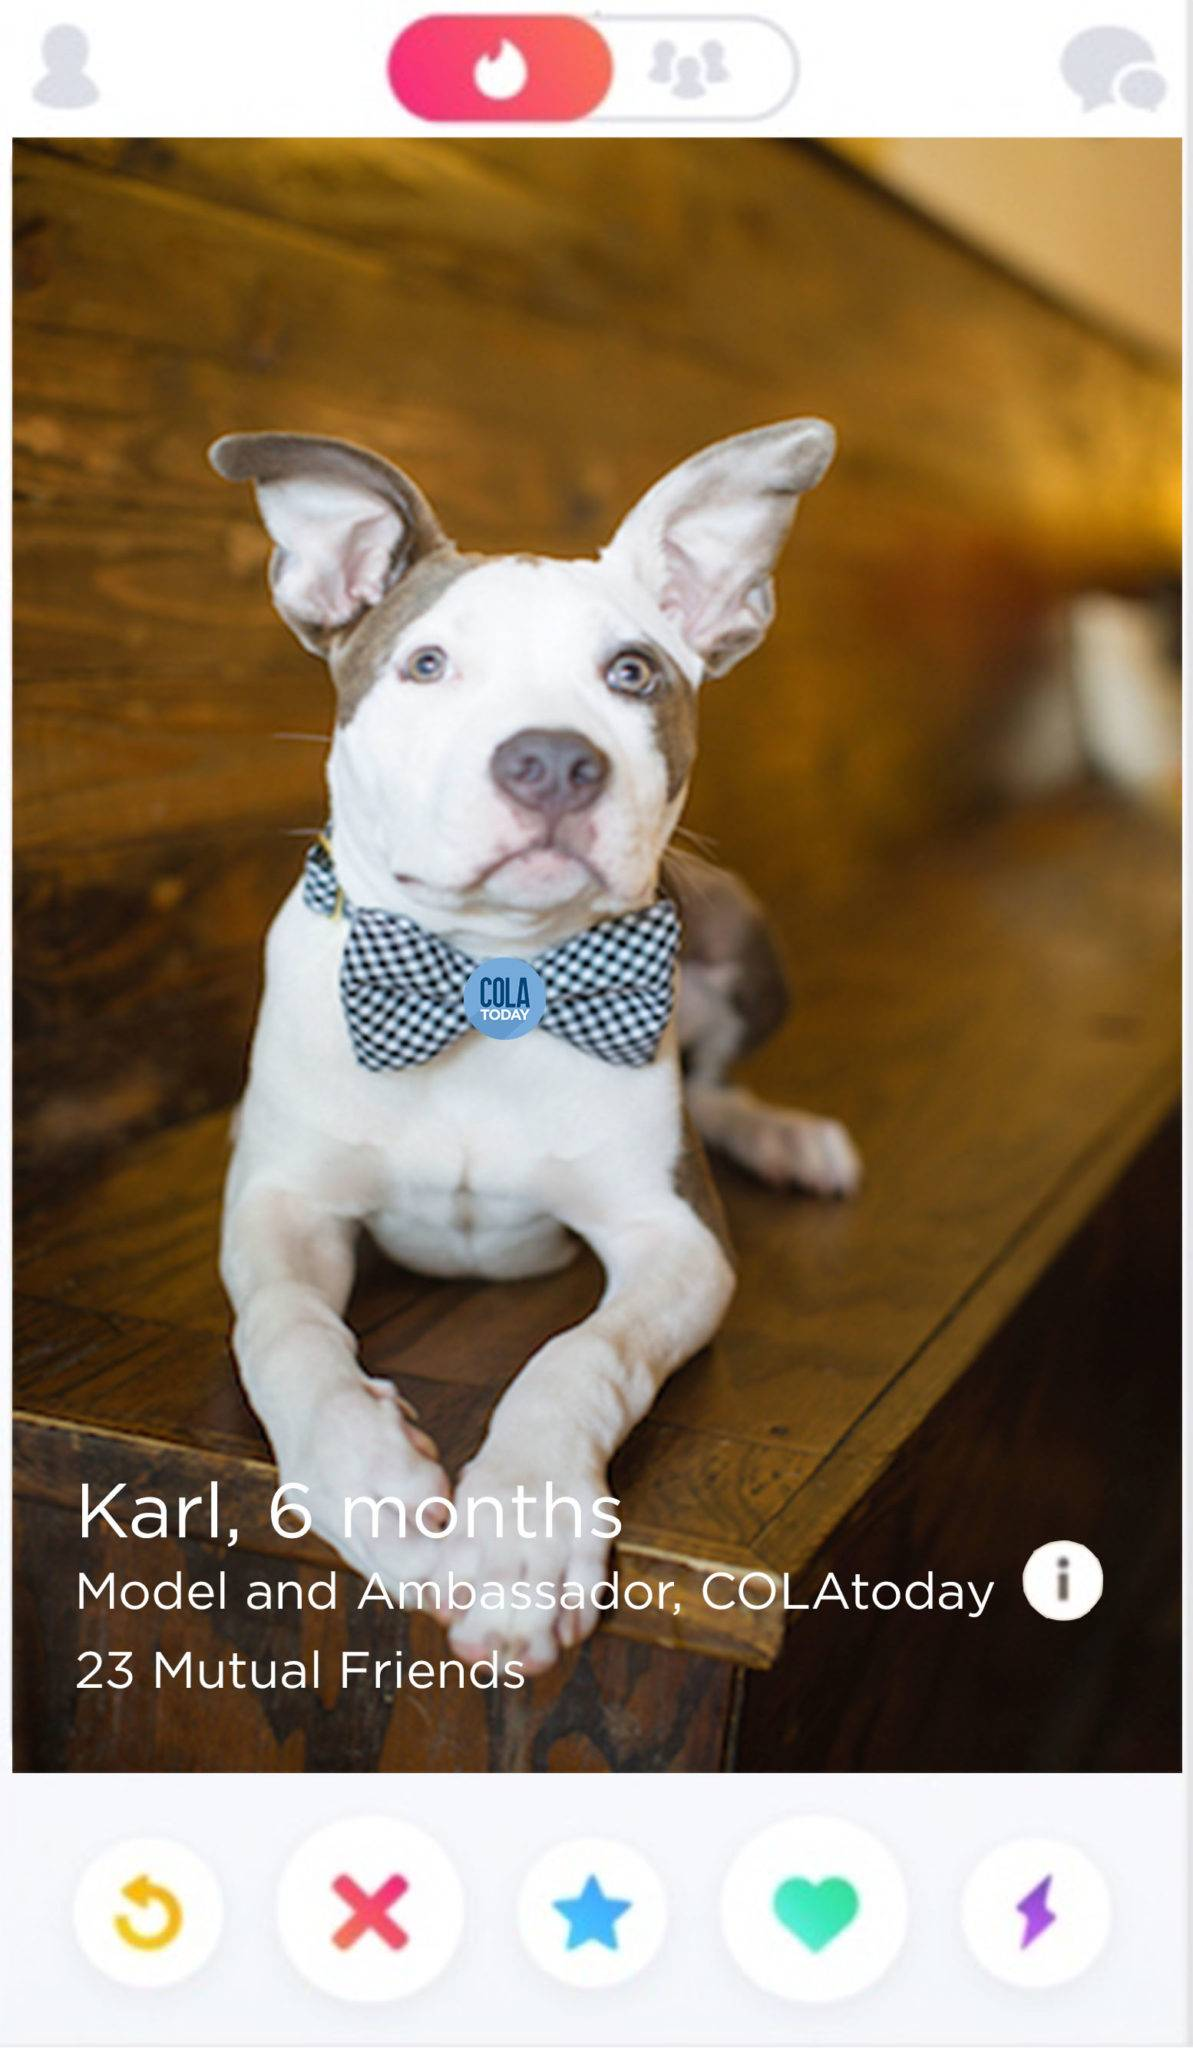 Online puppy dating services